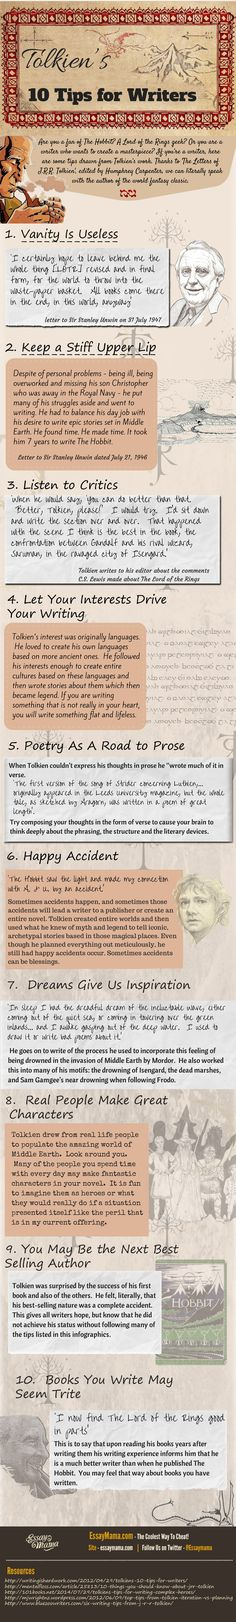 Tolkien's tips on writing.